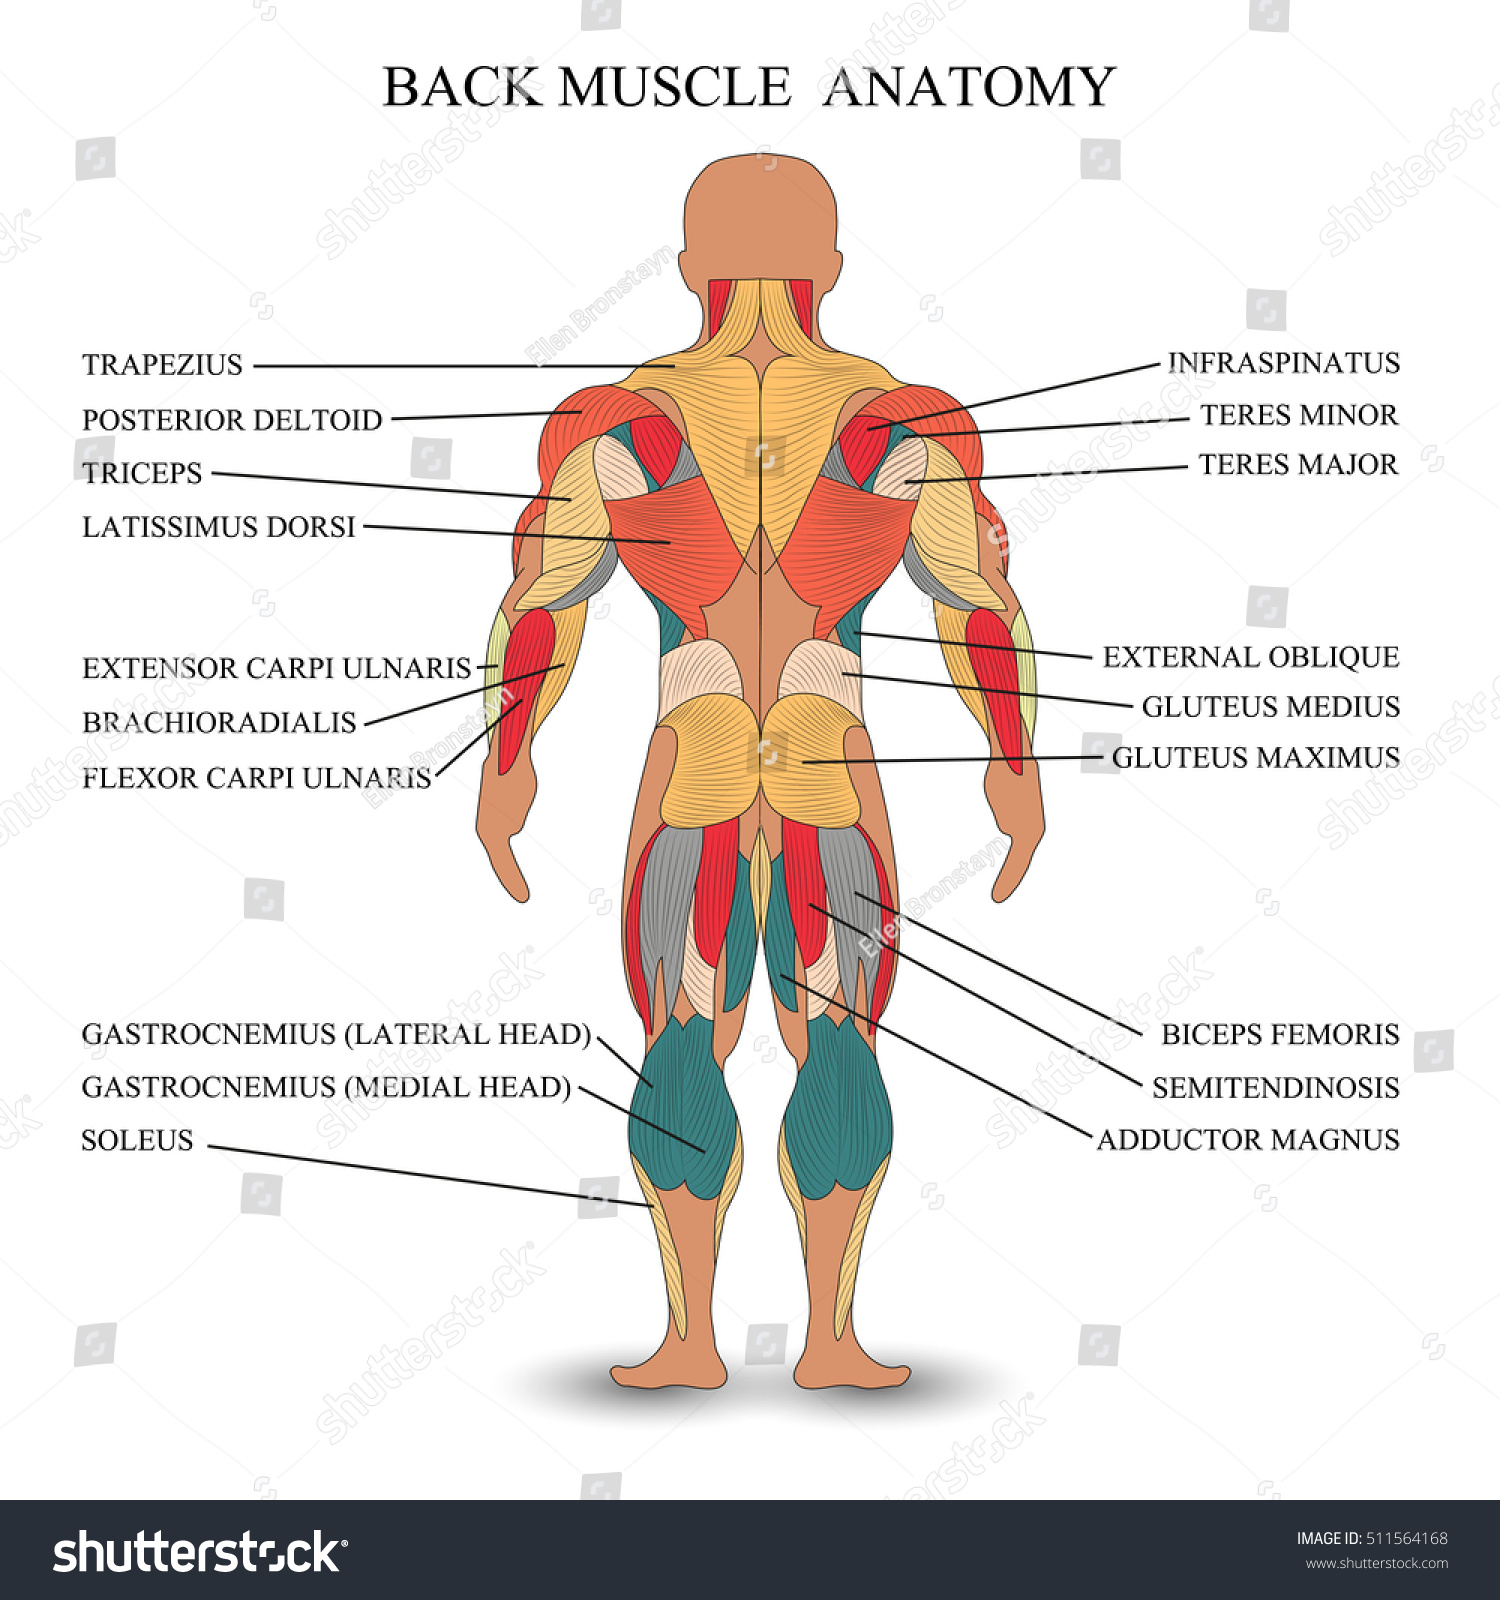 Anatomy Human Muscles Back Template Medical Stock Illustration ...